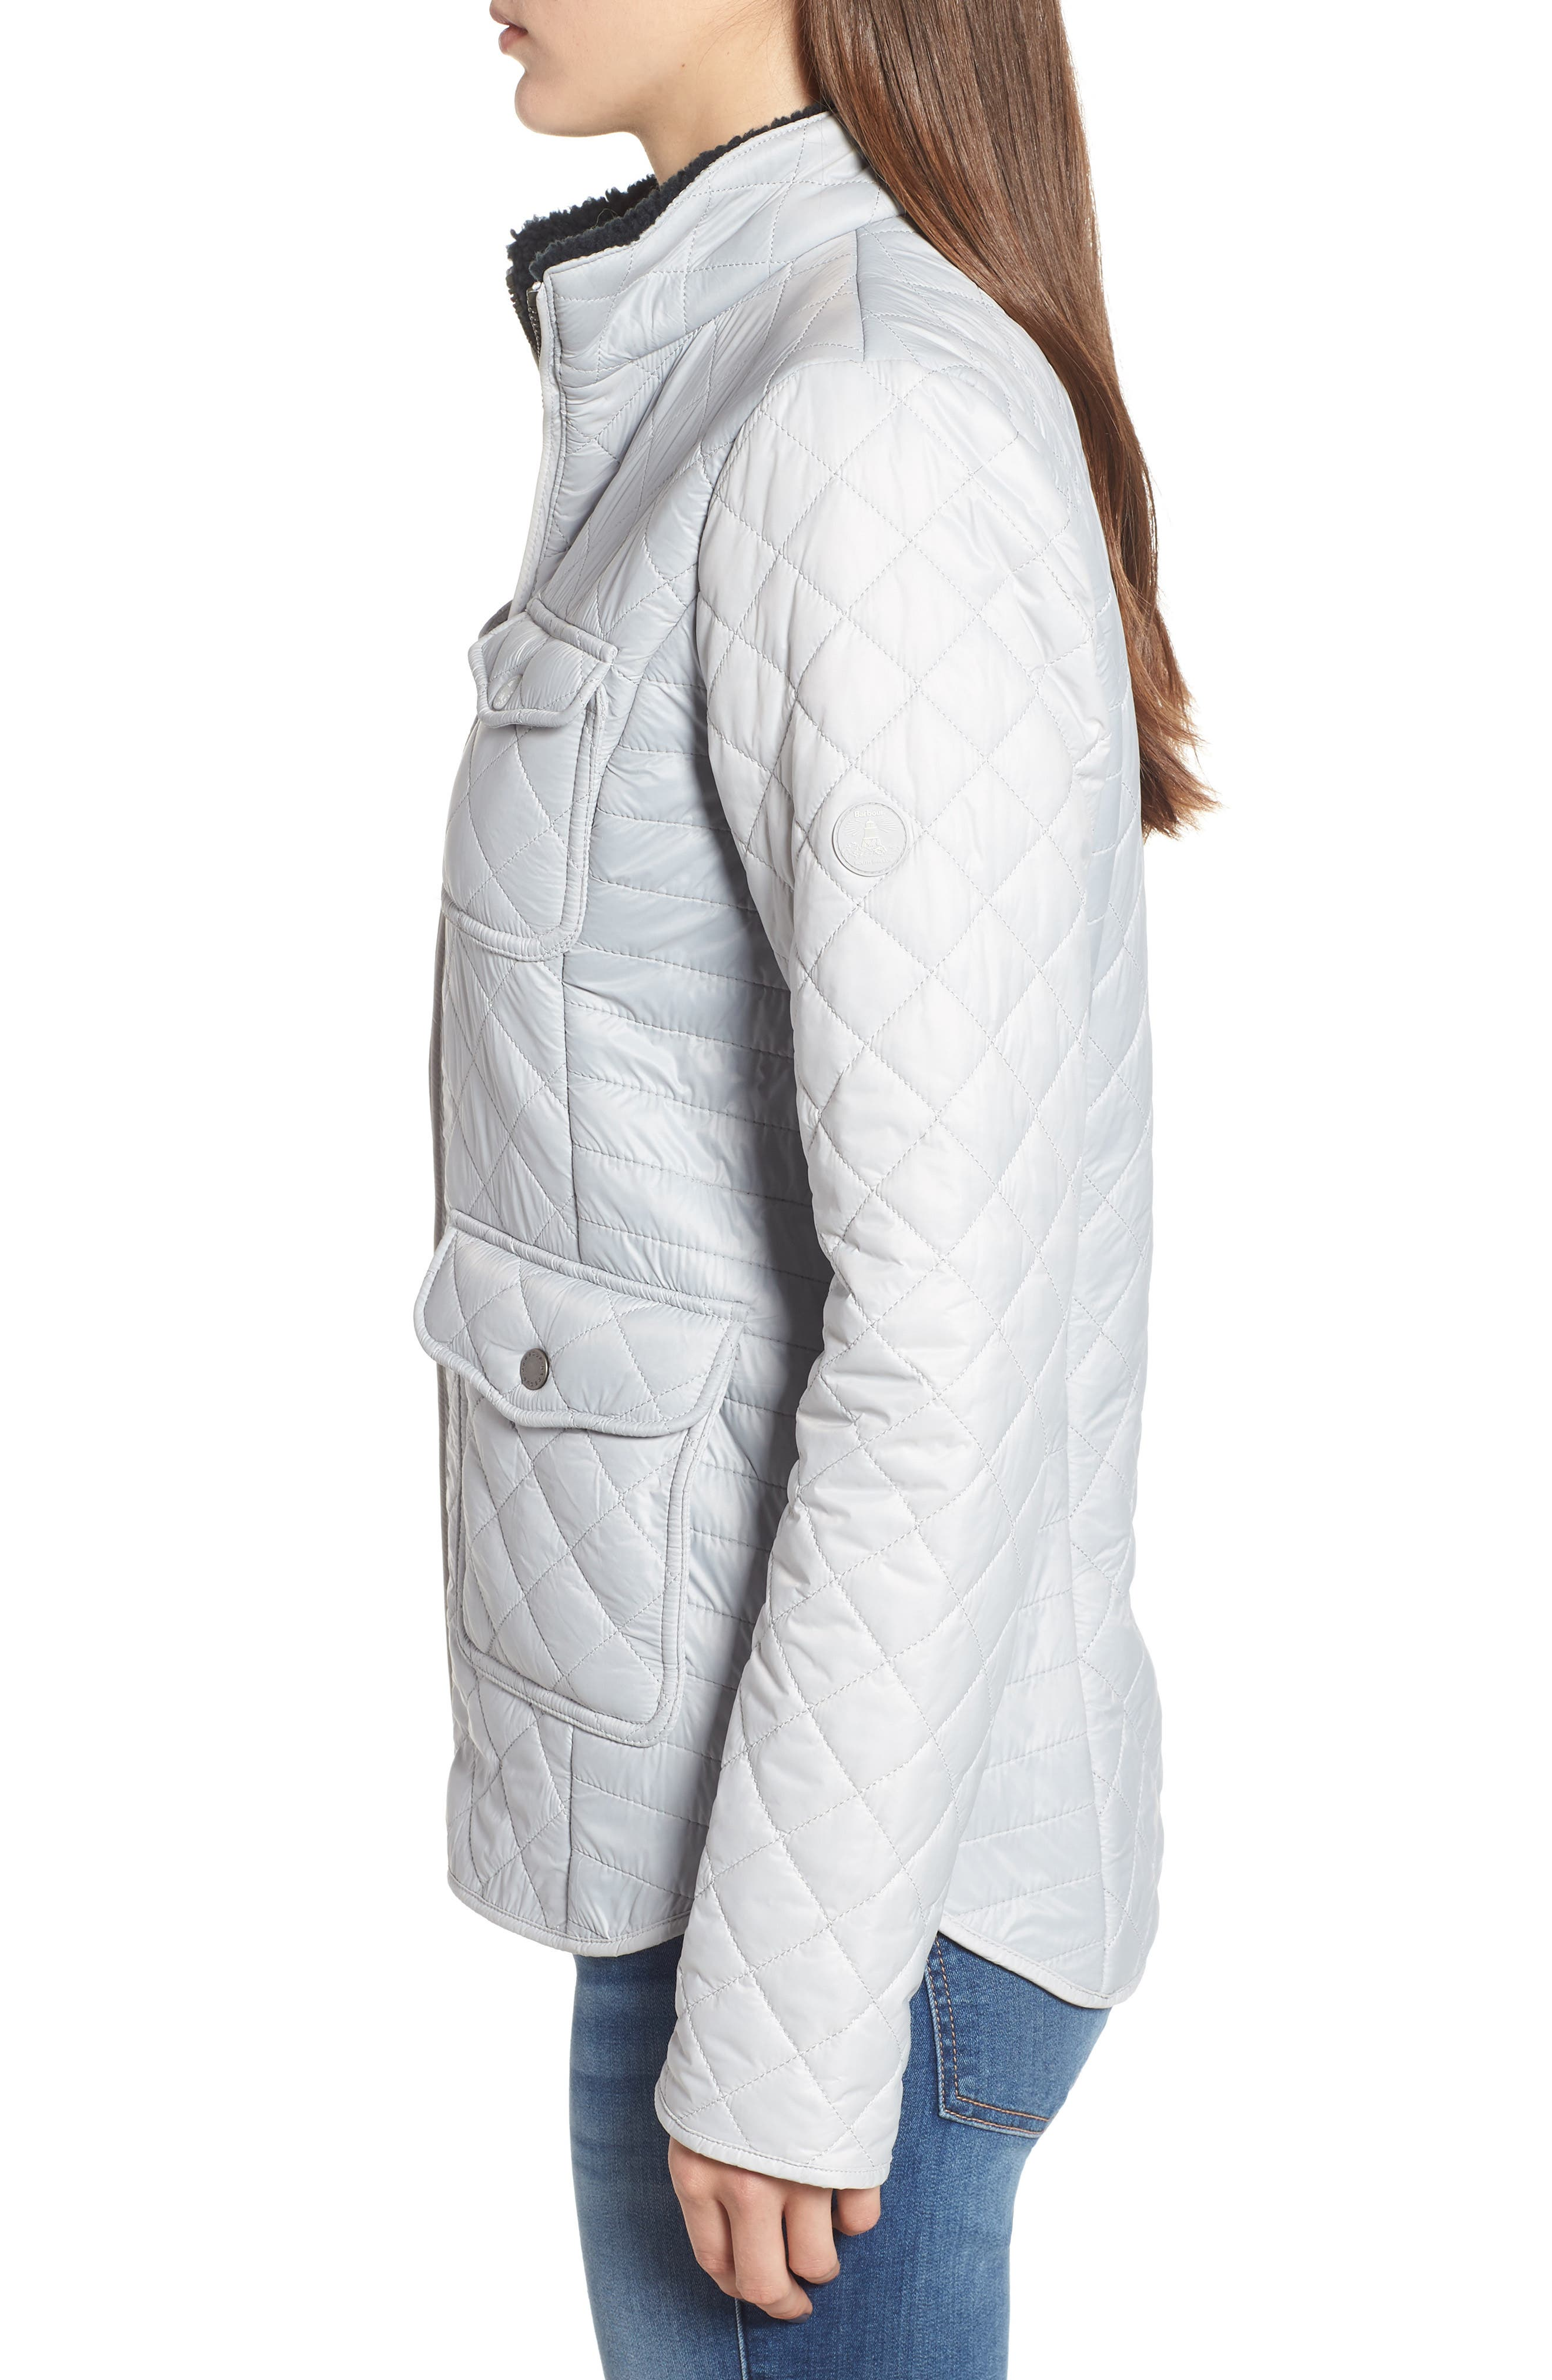 BARBOUR,                             Weymouth Quilted Jacket,                             Alternate thumbnail 3, color,                             100